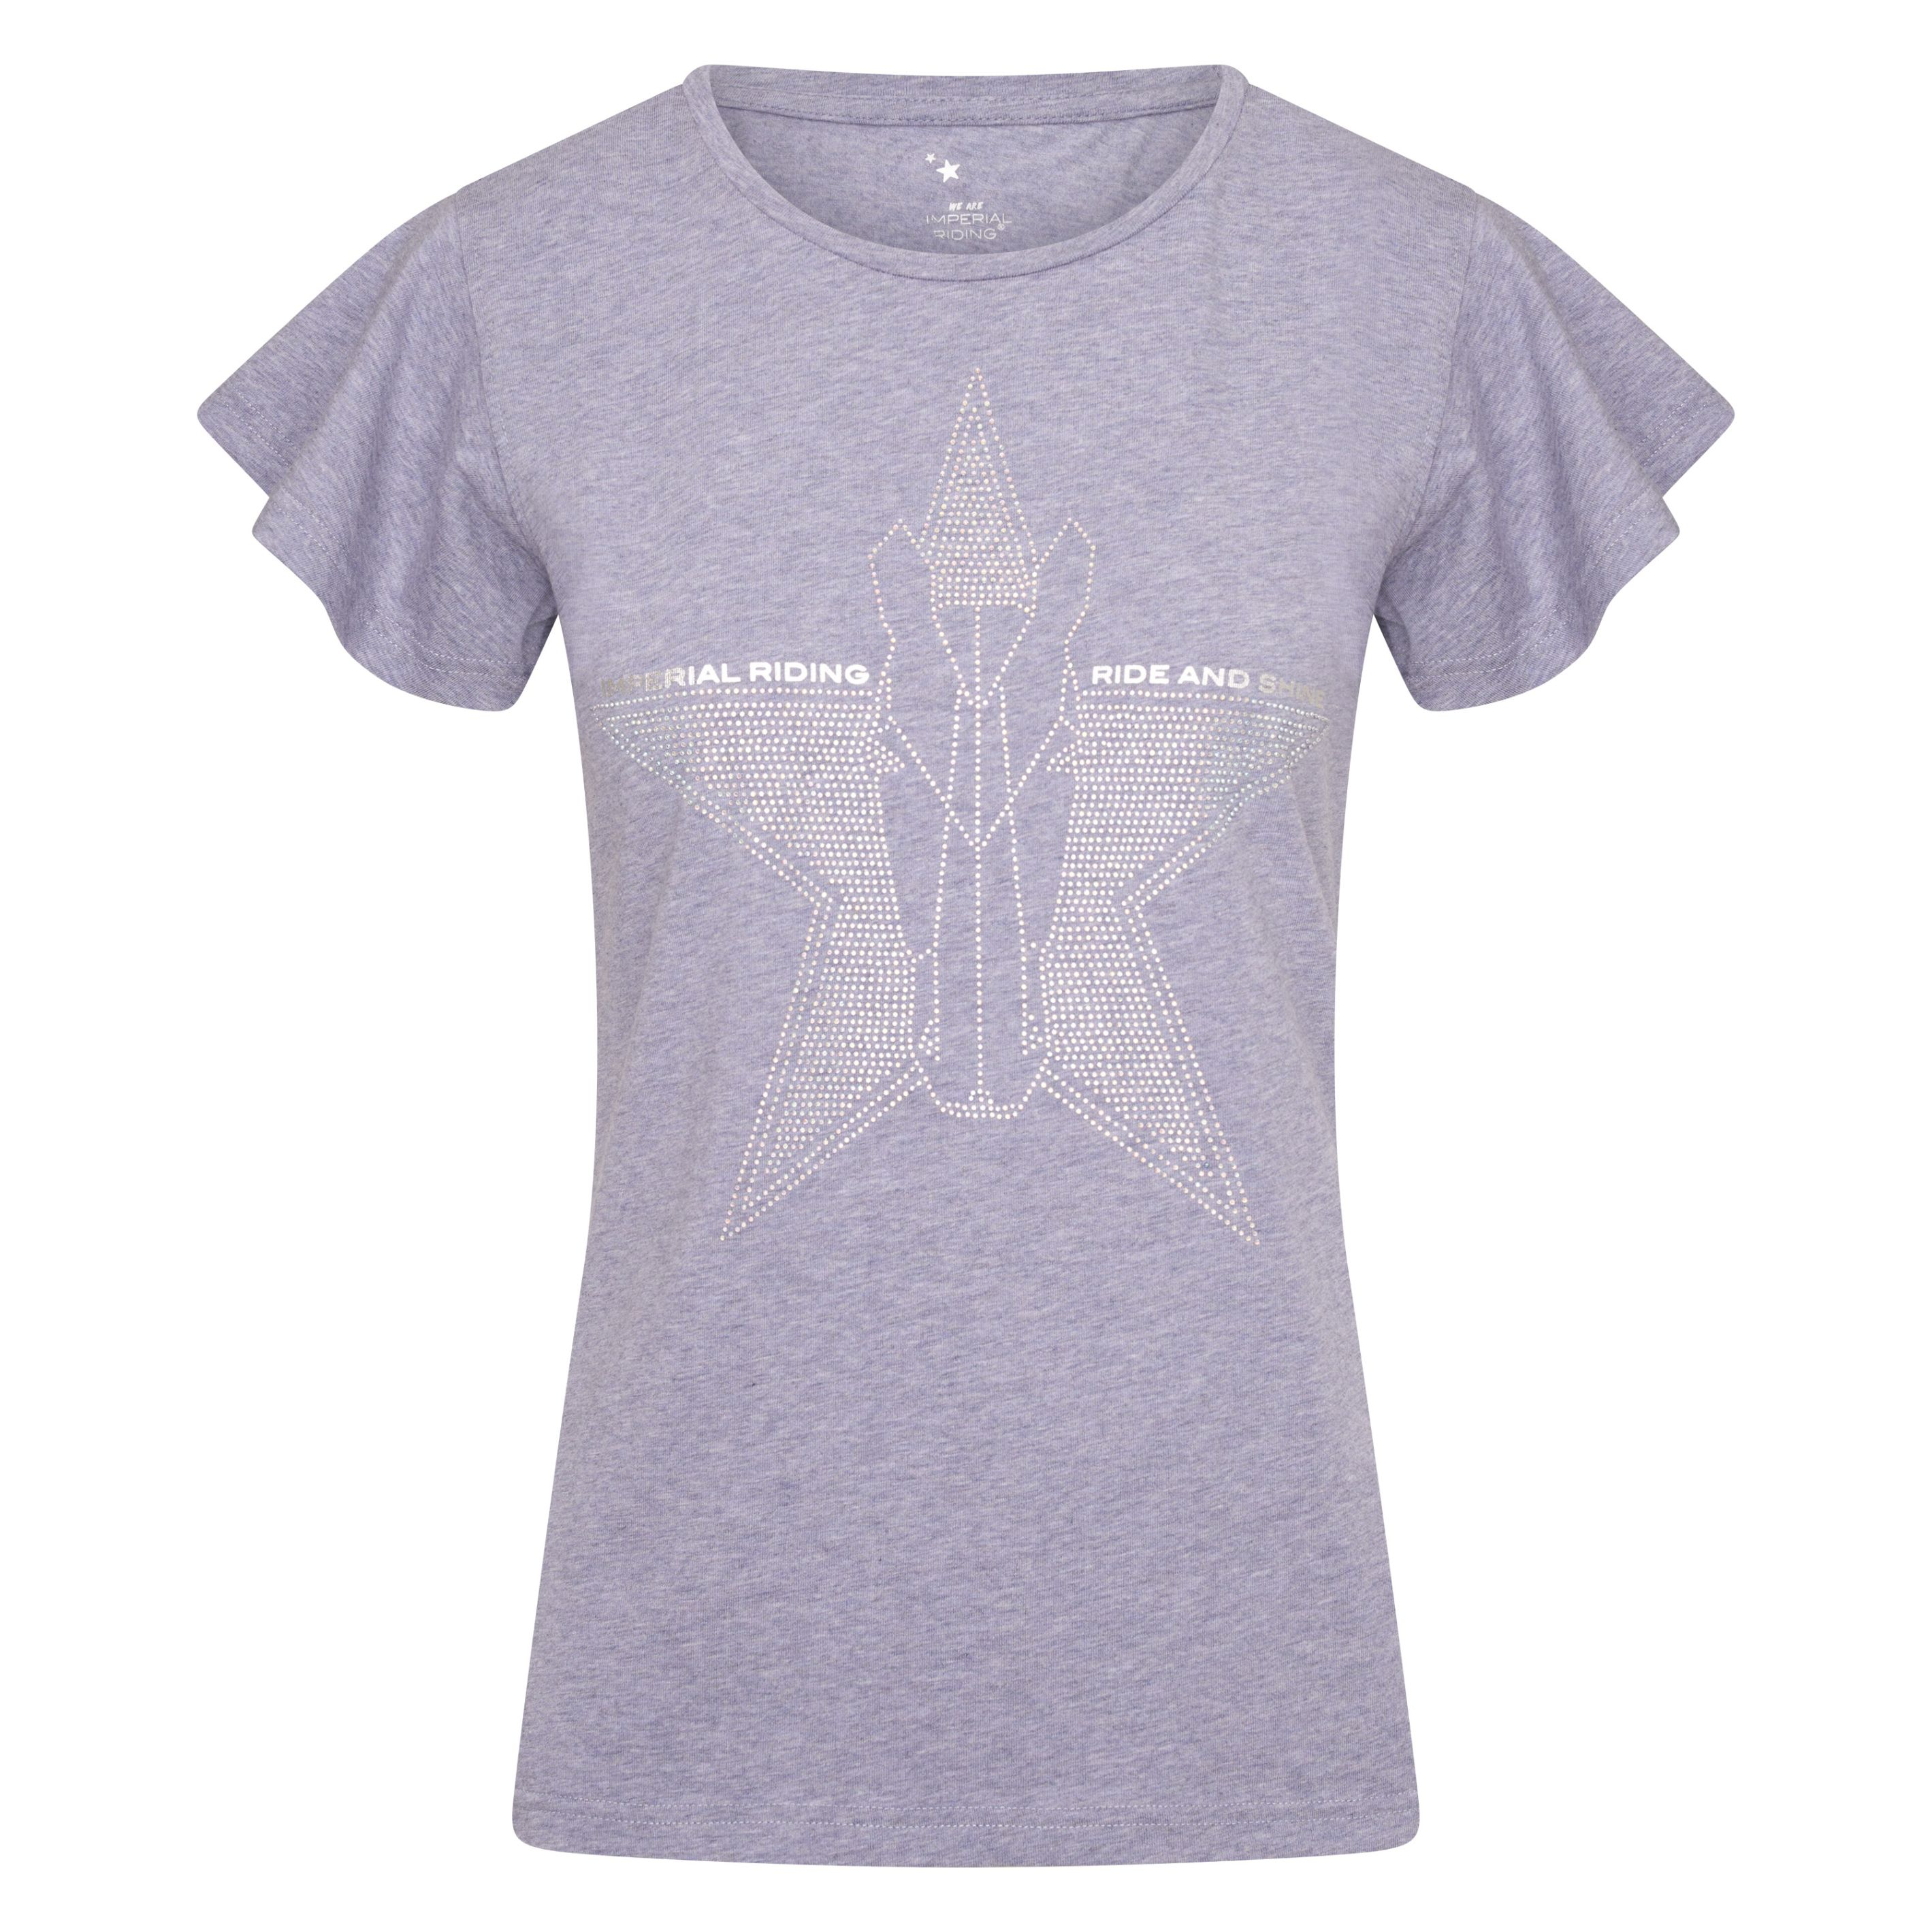 Imperial Riding top IRH belle star